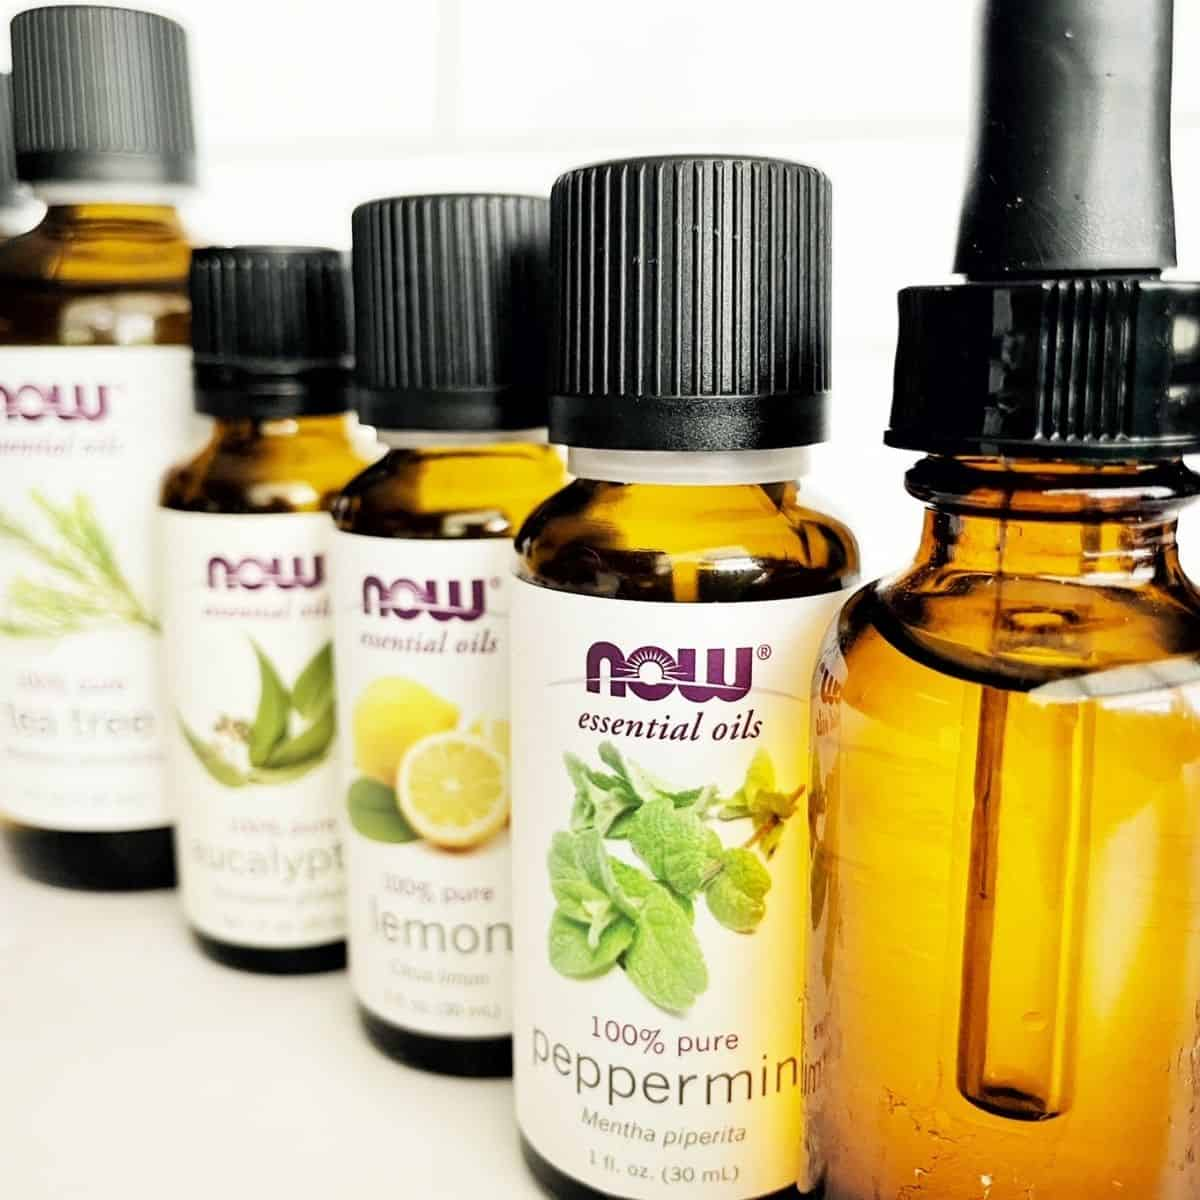 The Best Essential Oils For Beards